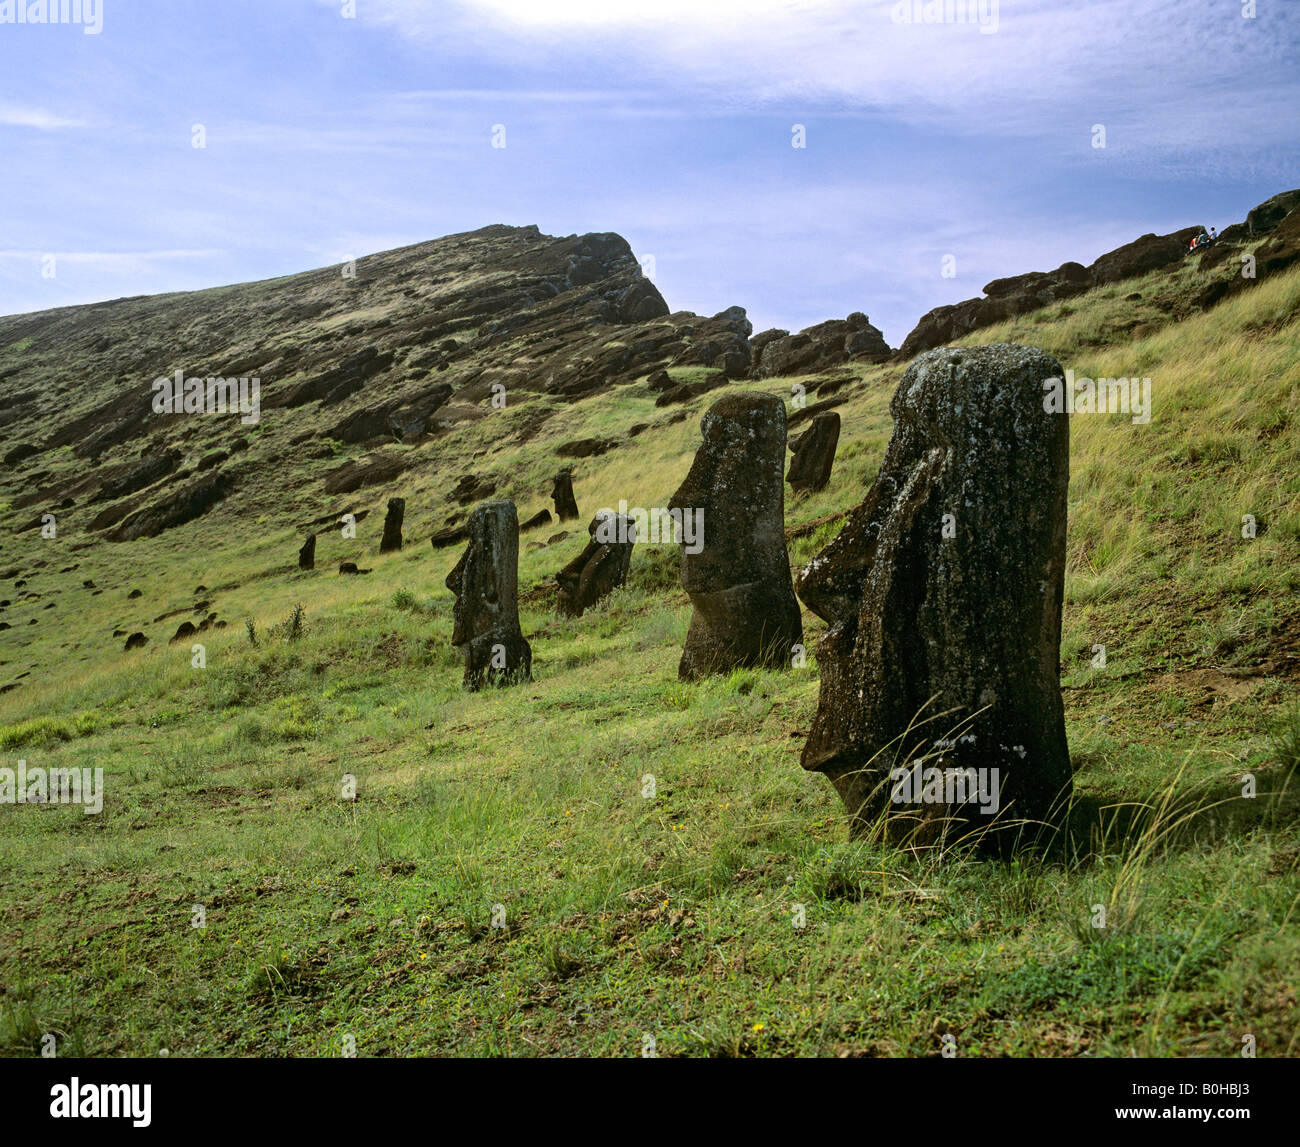 Moais in a caldera, stone sculptures made from tuff rock, Easter Island, Oceania - Stock Image